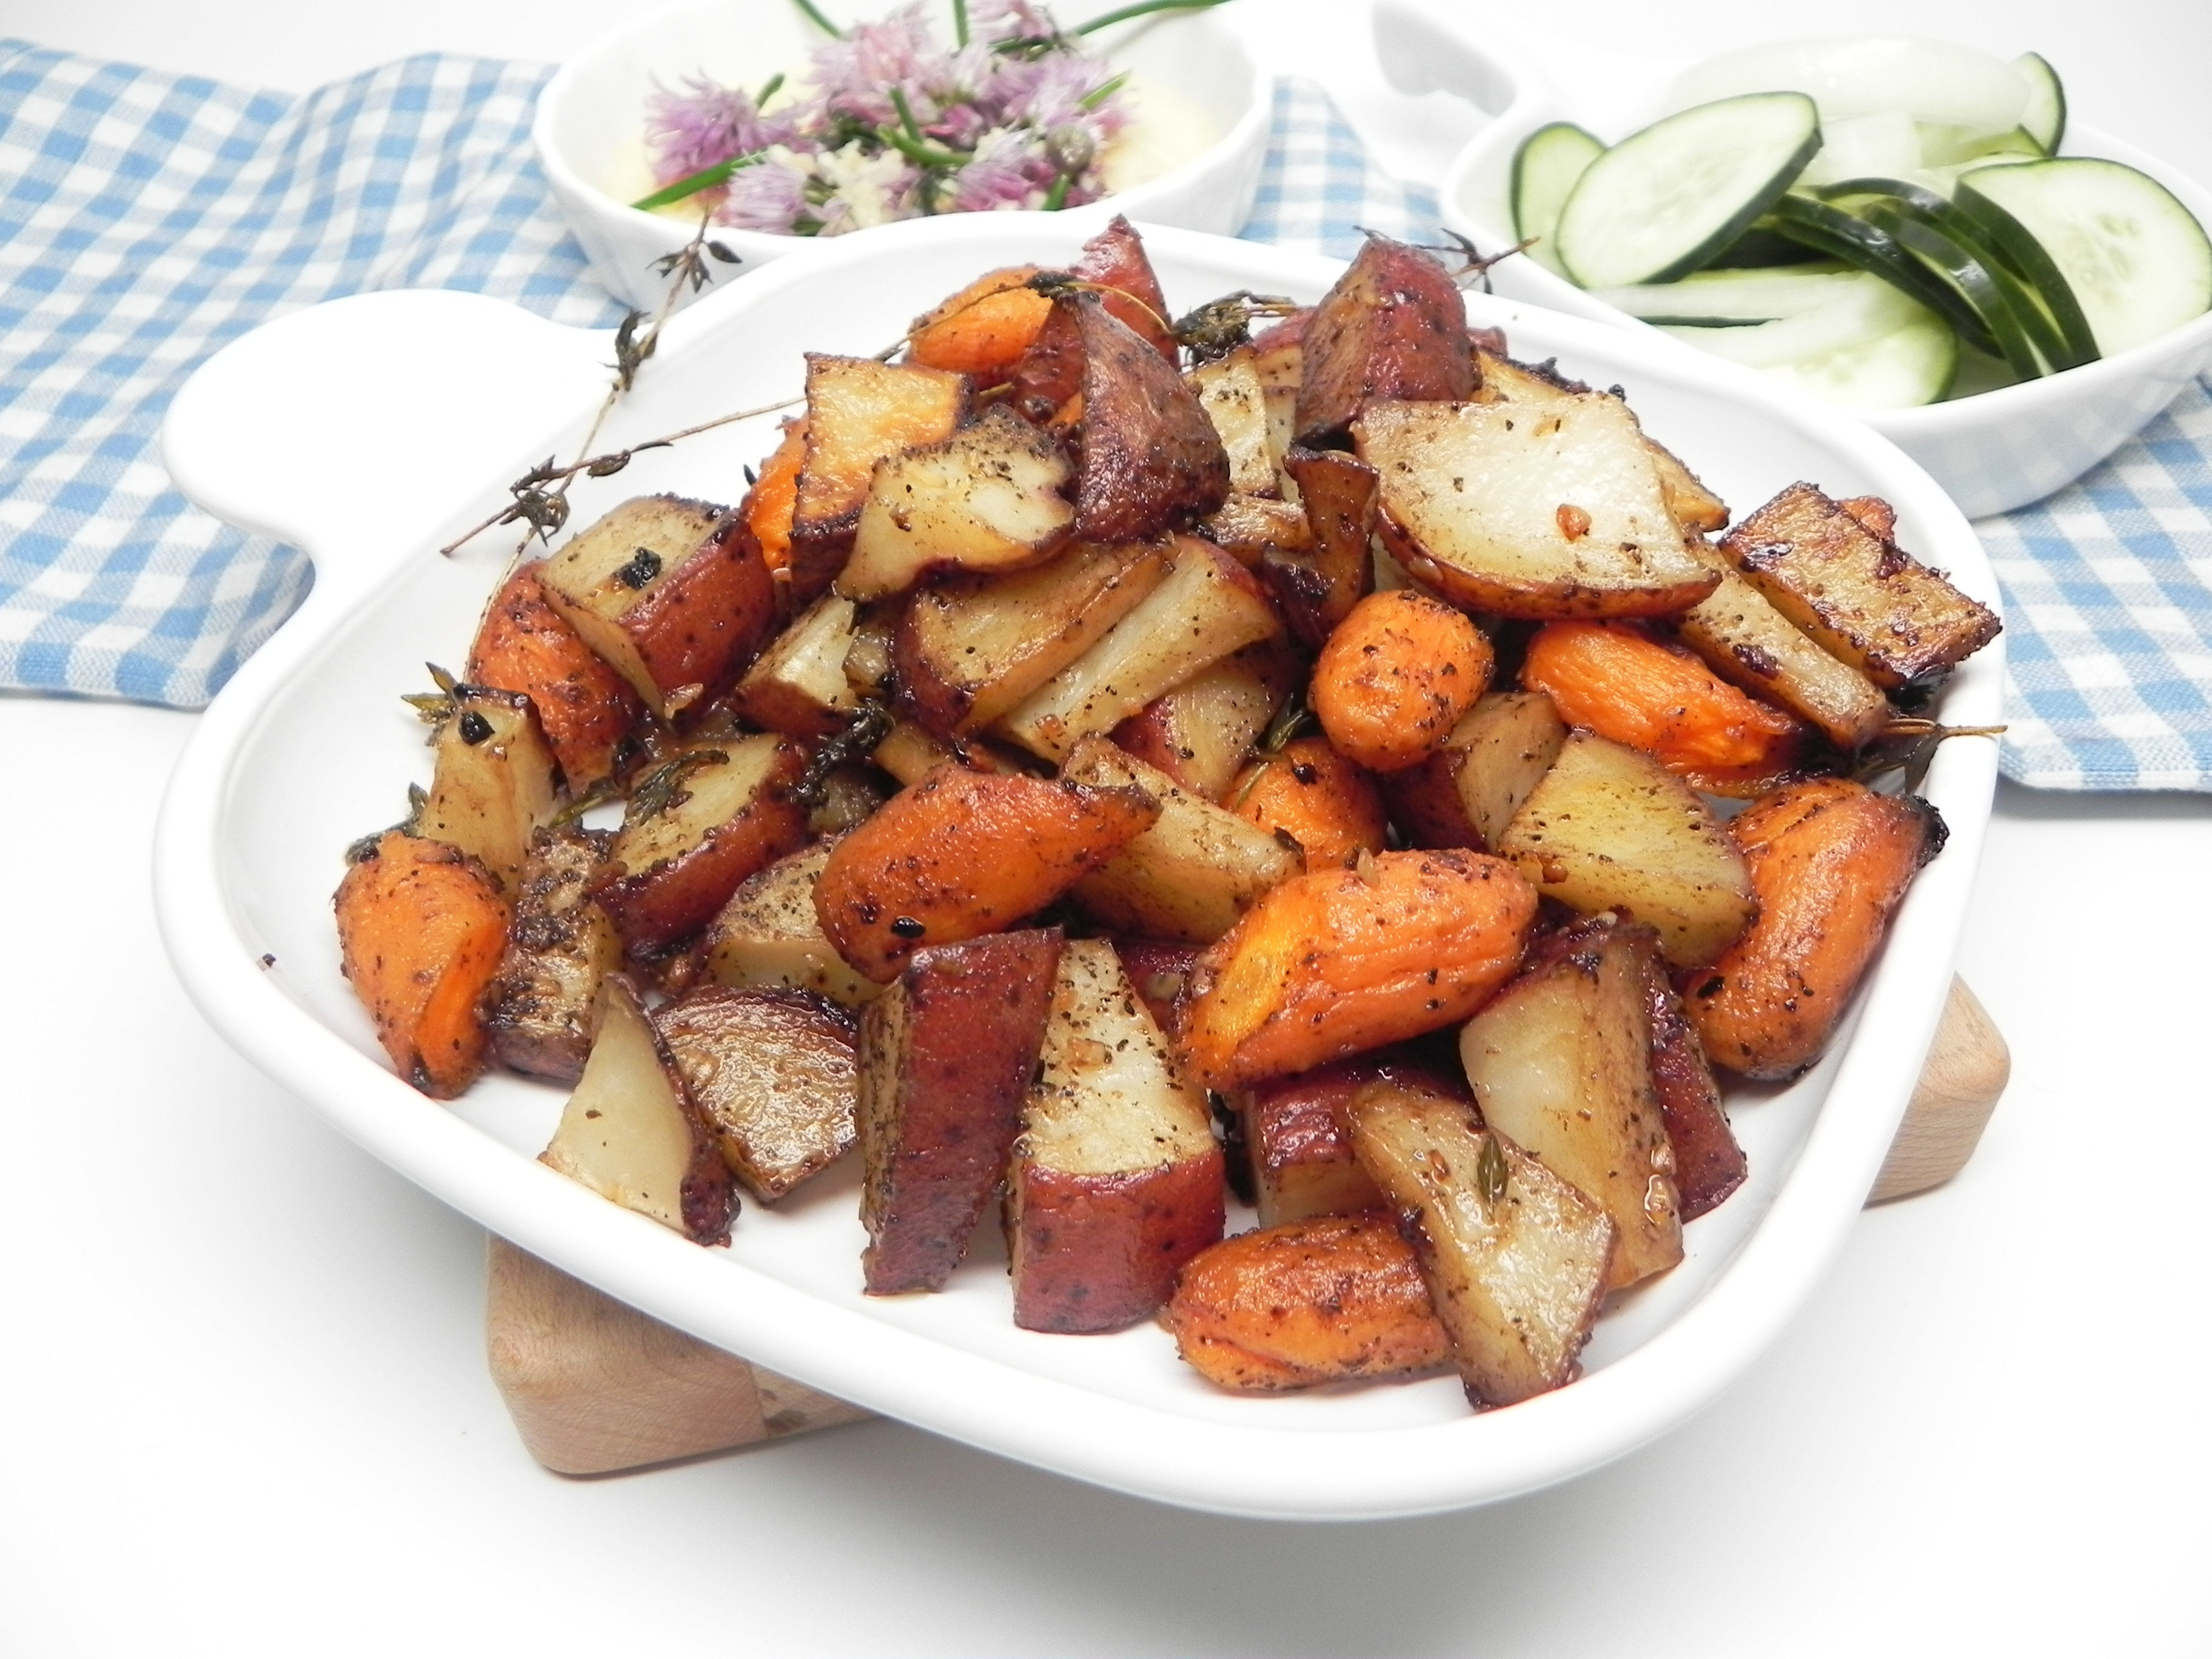 Balsamic-Roasted Vegetables